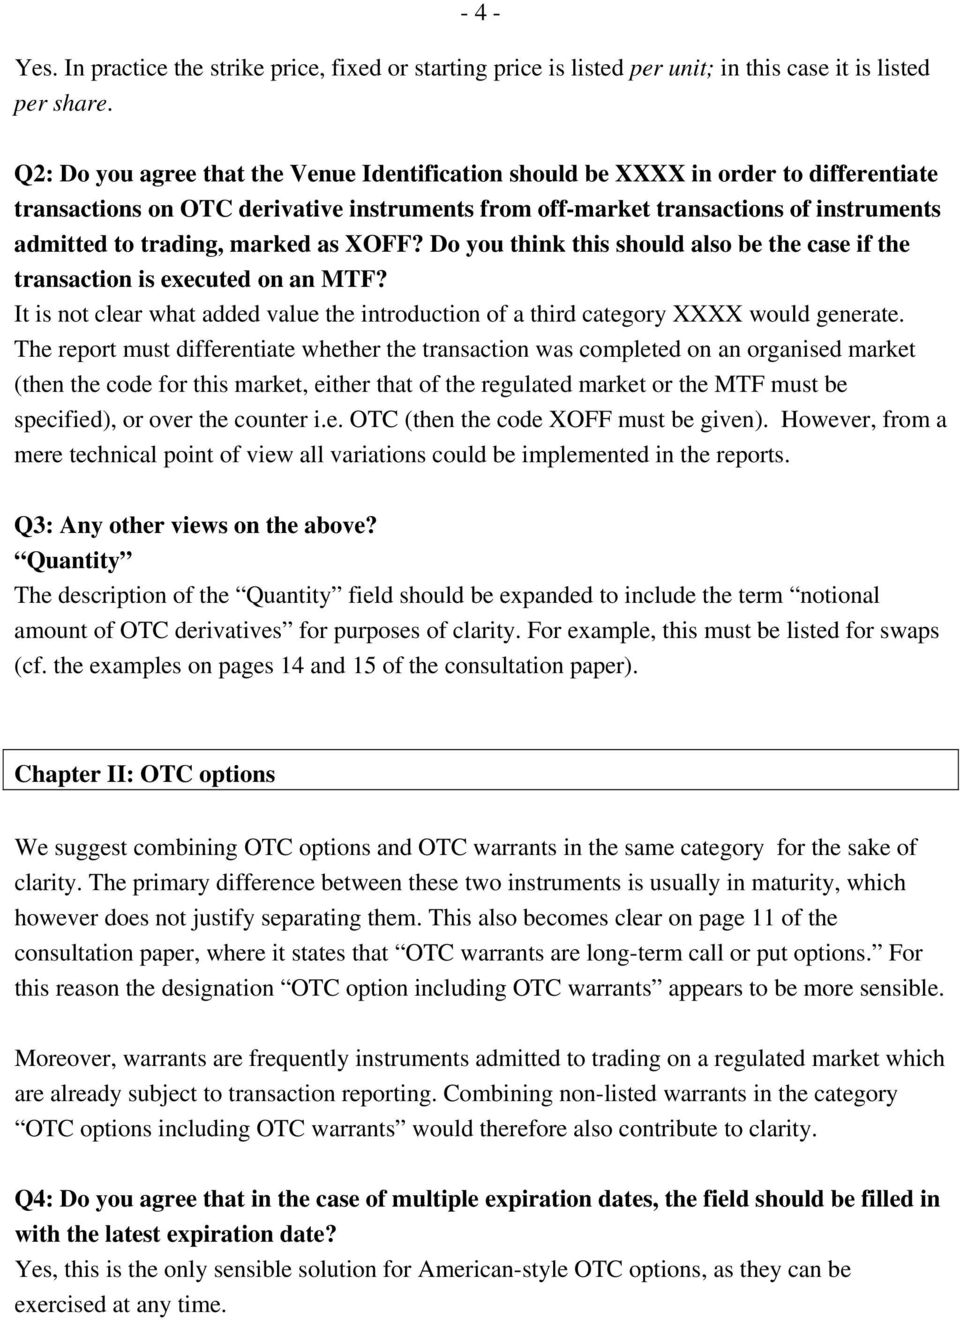 marked as XOFF? Do you think this should also be the case if the transaction is executed on an MTF? It is not clear what added value the introduction of a third category XXXX would generate.